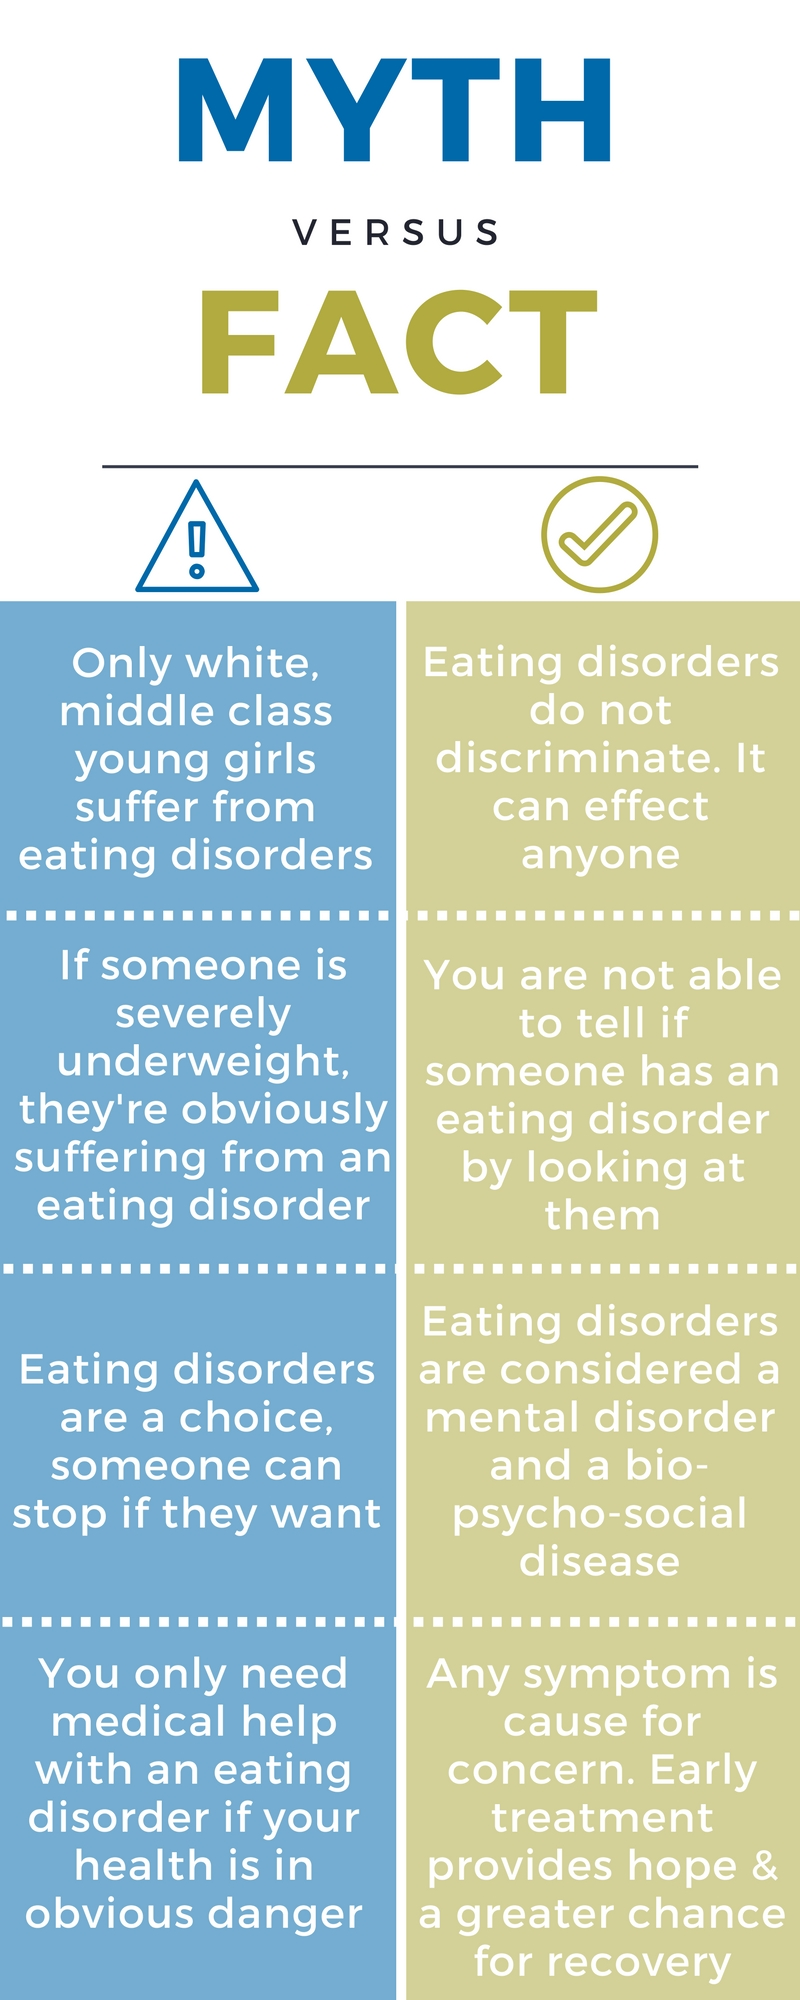 disorder eating papers research This paper, eating disorders: more to them than meets the mouth, was a review of several studies on anorexia nervosa and bulimia nervosa that showd primarily that the disorders may be more prevalent than popular belief reflects.